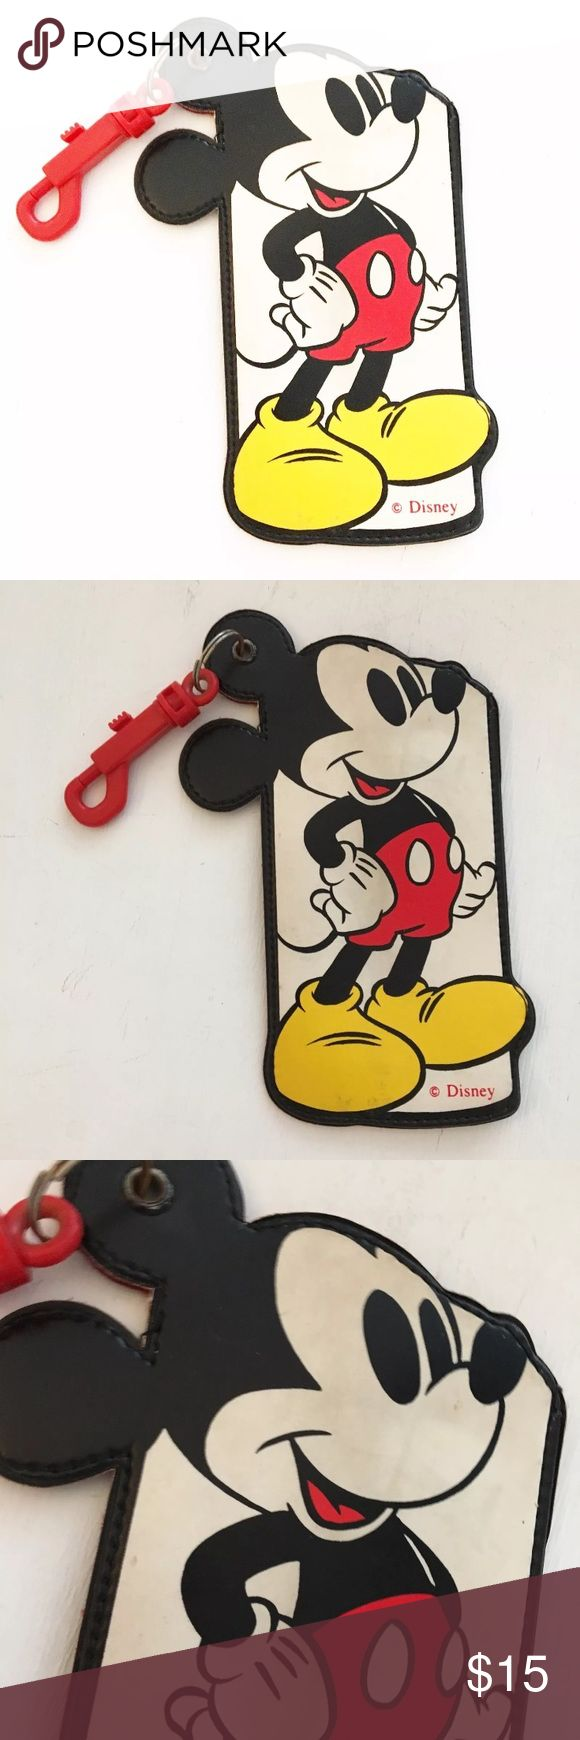 "Vintage Mickey Mouse Disney Manchon Clip Case Approx. 7"" by 3.5"". Please see all pictures for an accurate description of condition. Very minimal normal wear. Vintage Bags"